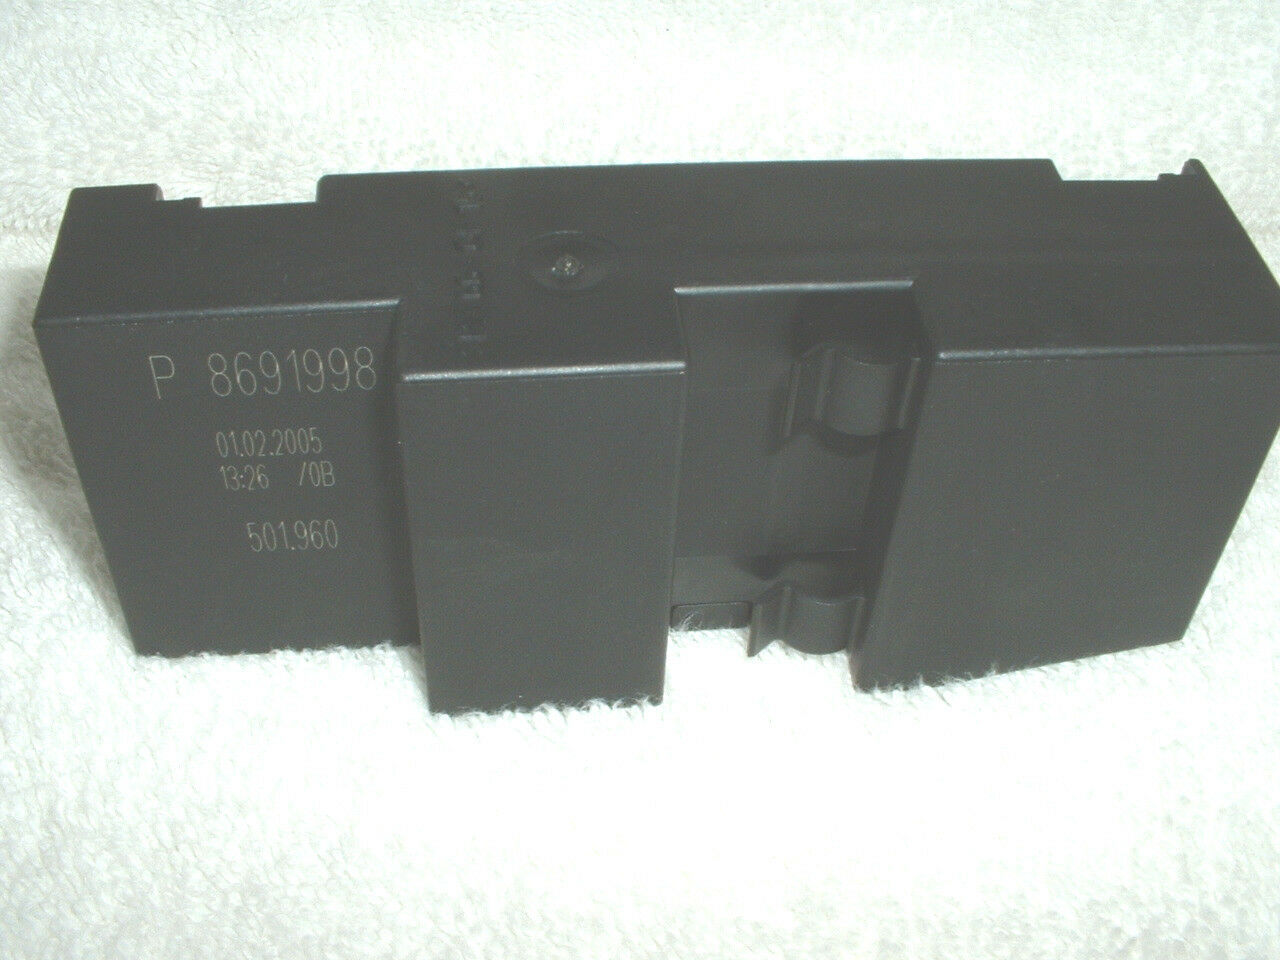 Oem Volvo S60 R S60r 01 04 Dstc Traction Control Module 8691998 2004 Fuse Box Norton Secured Powered By Verisign